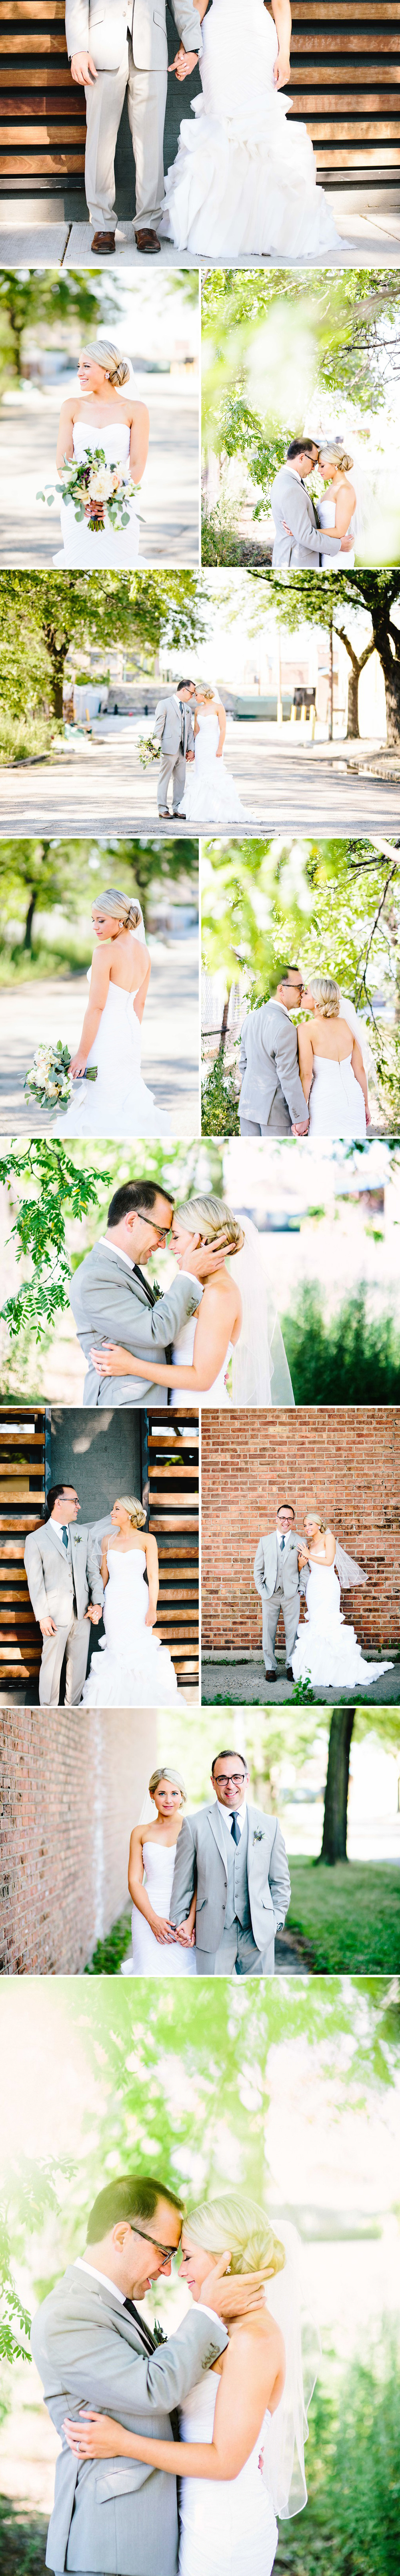 chicago-fine-art-wedding-photography-stratta7